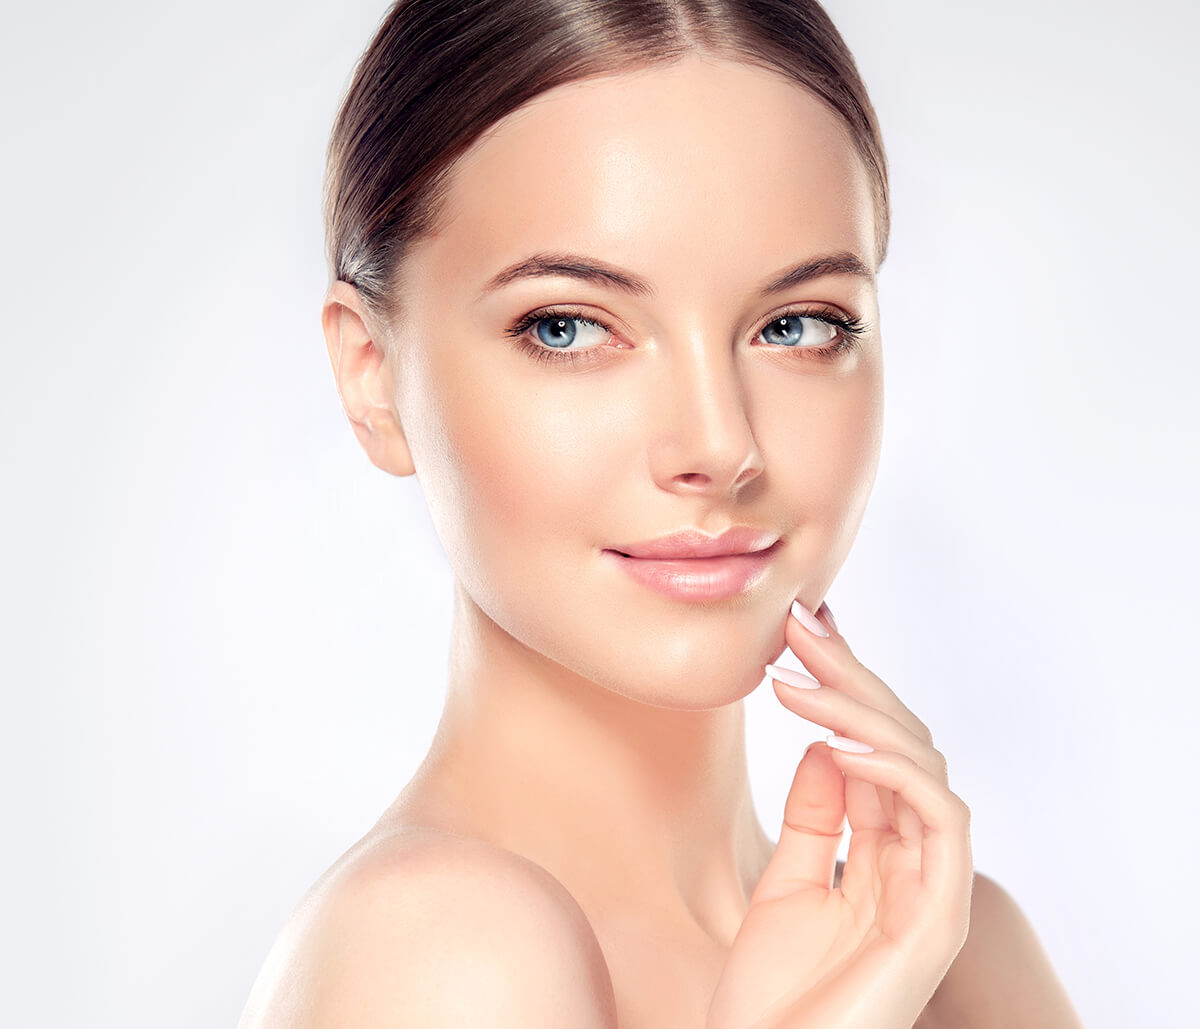 Rejuvenate Your Skin with Microneedling and Radiofrequency Techniques in Mississauga, ON